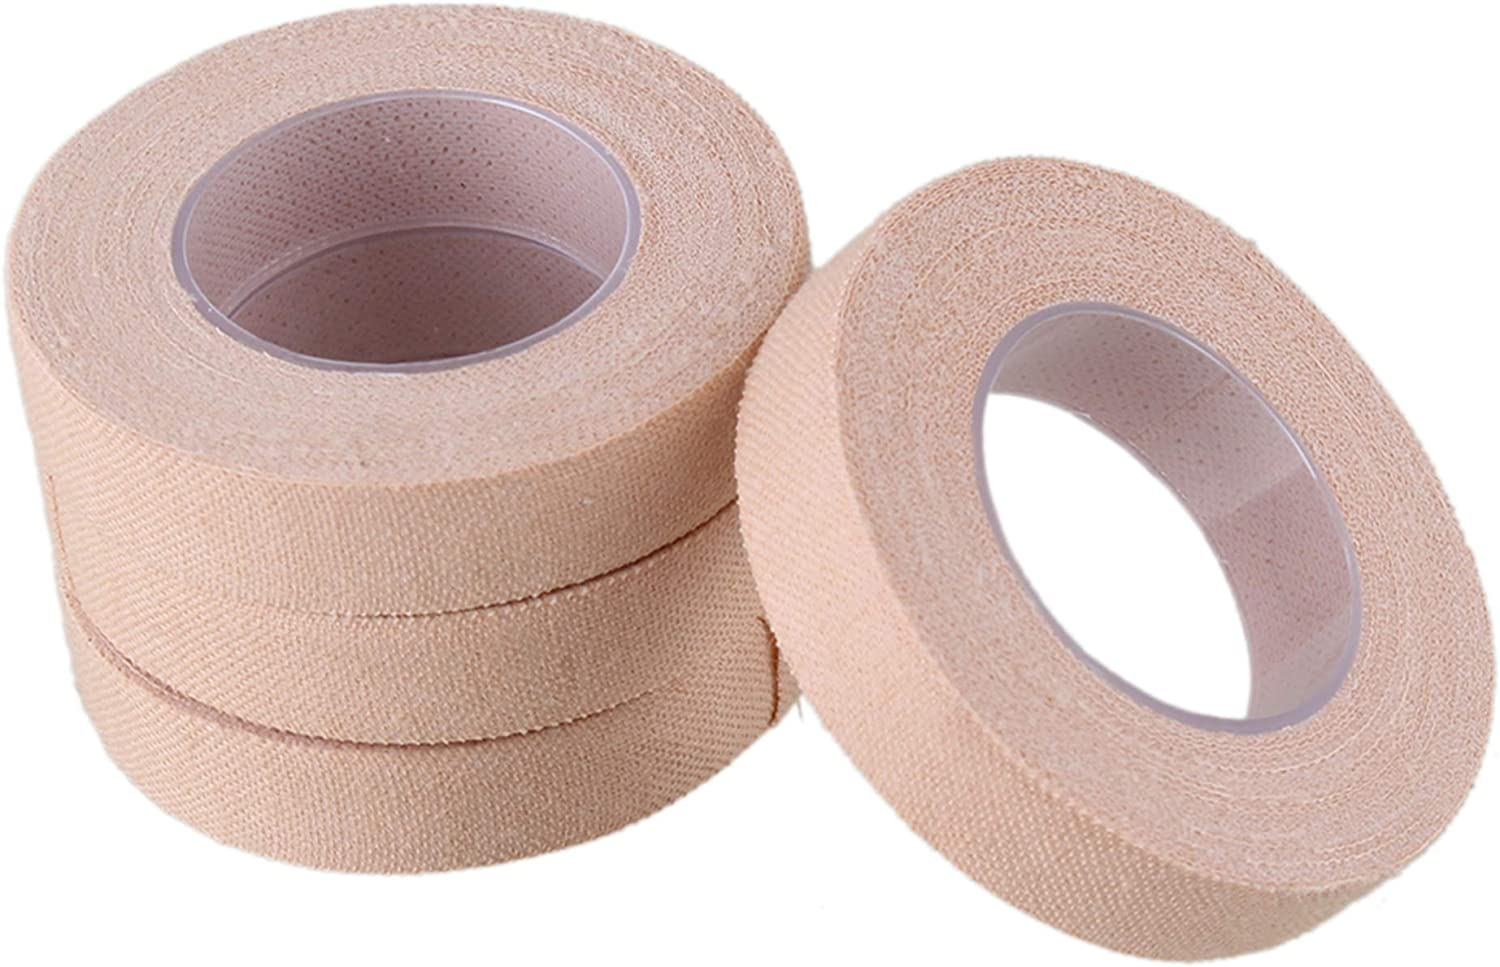 lovermusic Lovermusic 5M Sales of SALE items Max 71% OFF from new works Complexion Soft Adhesive Finger Re Tape